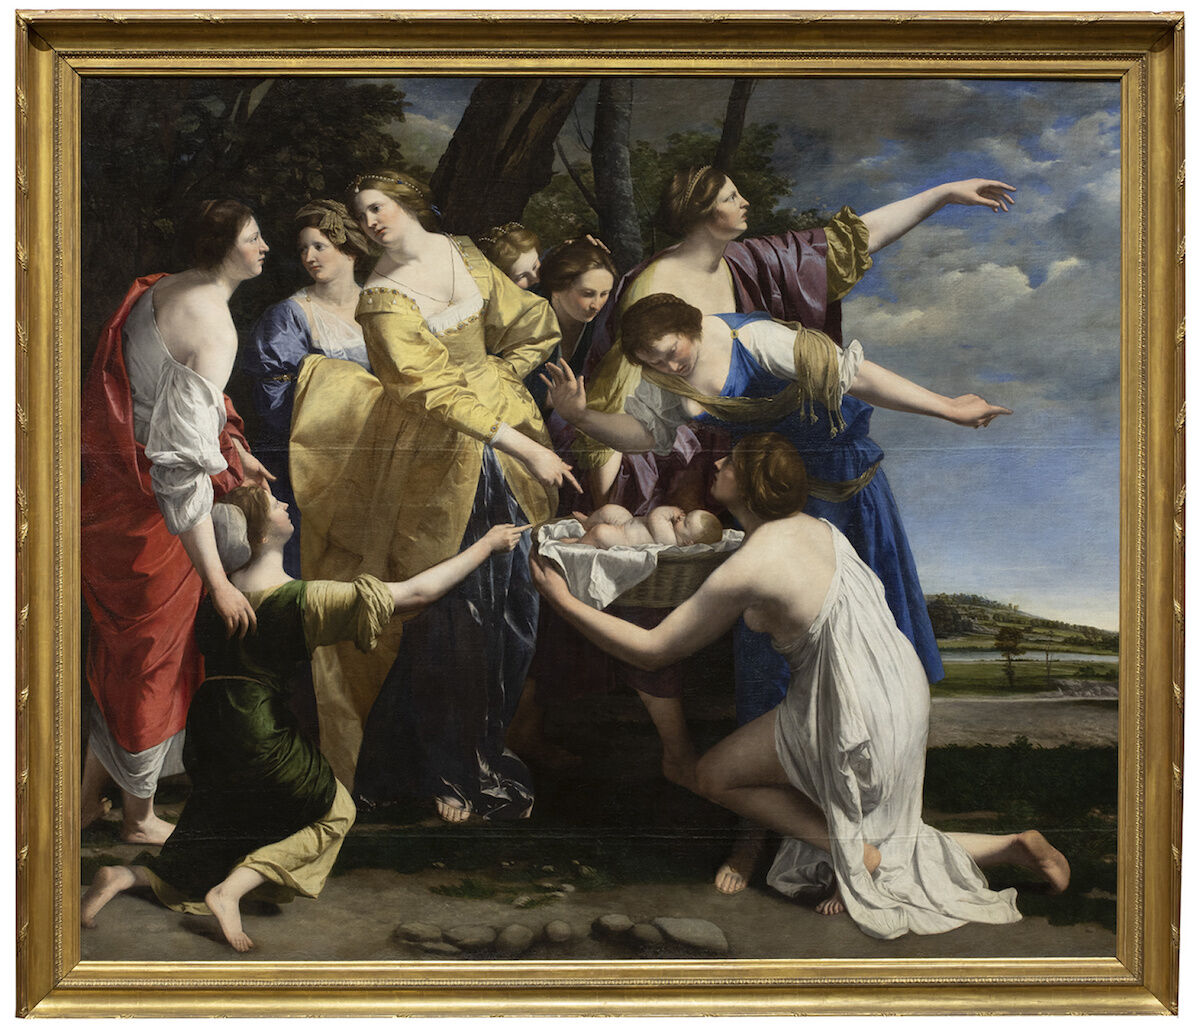 Orazio Gentileschi, The Finding of Moses, early 1630s. © Private Collection. Courtesy National Gallery, London.